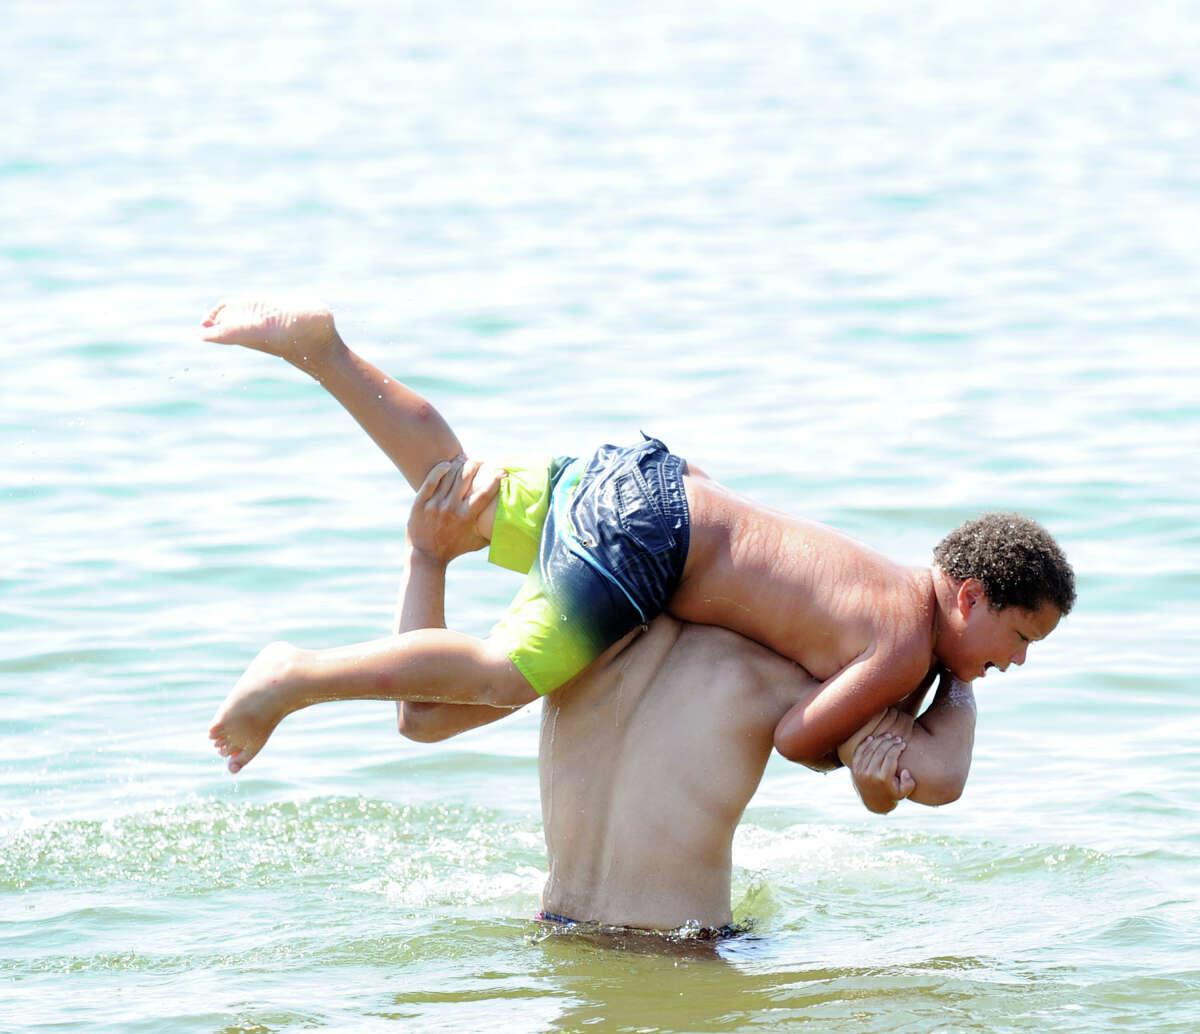 Stamford resident Kadnn Anthony Pena, top, just before he got tossed into the water by friend Joseph Muniz, also of Stamford, on the Fourth of July at Cummings Park beach in Stamford, Conn., Tuesday, July 4, 2017.